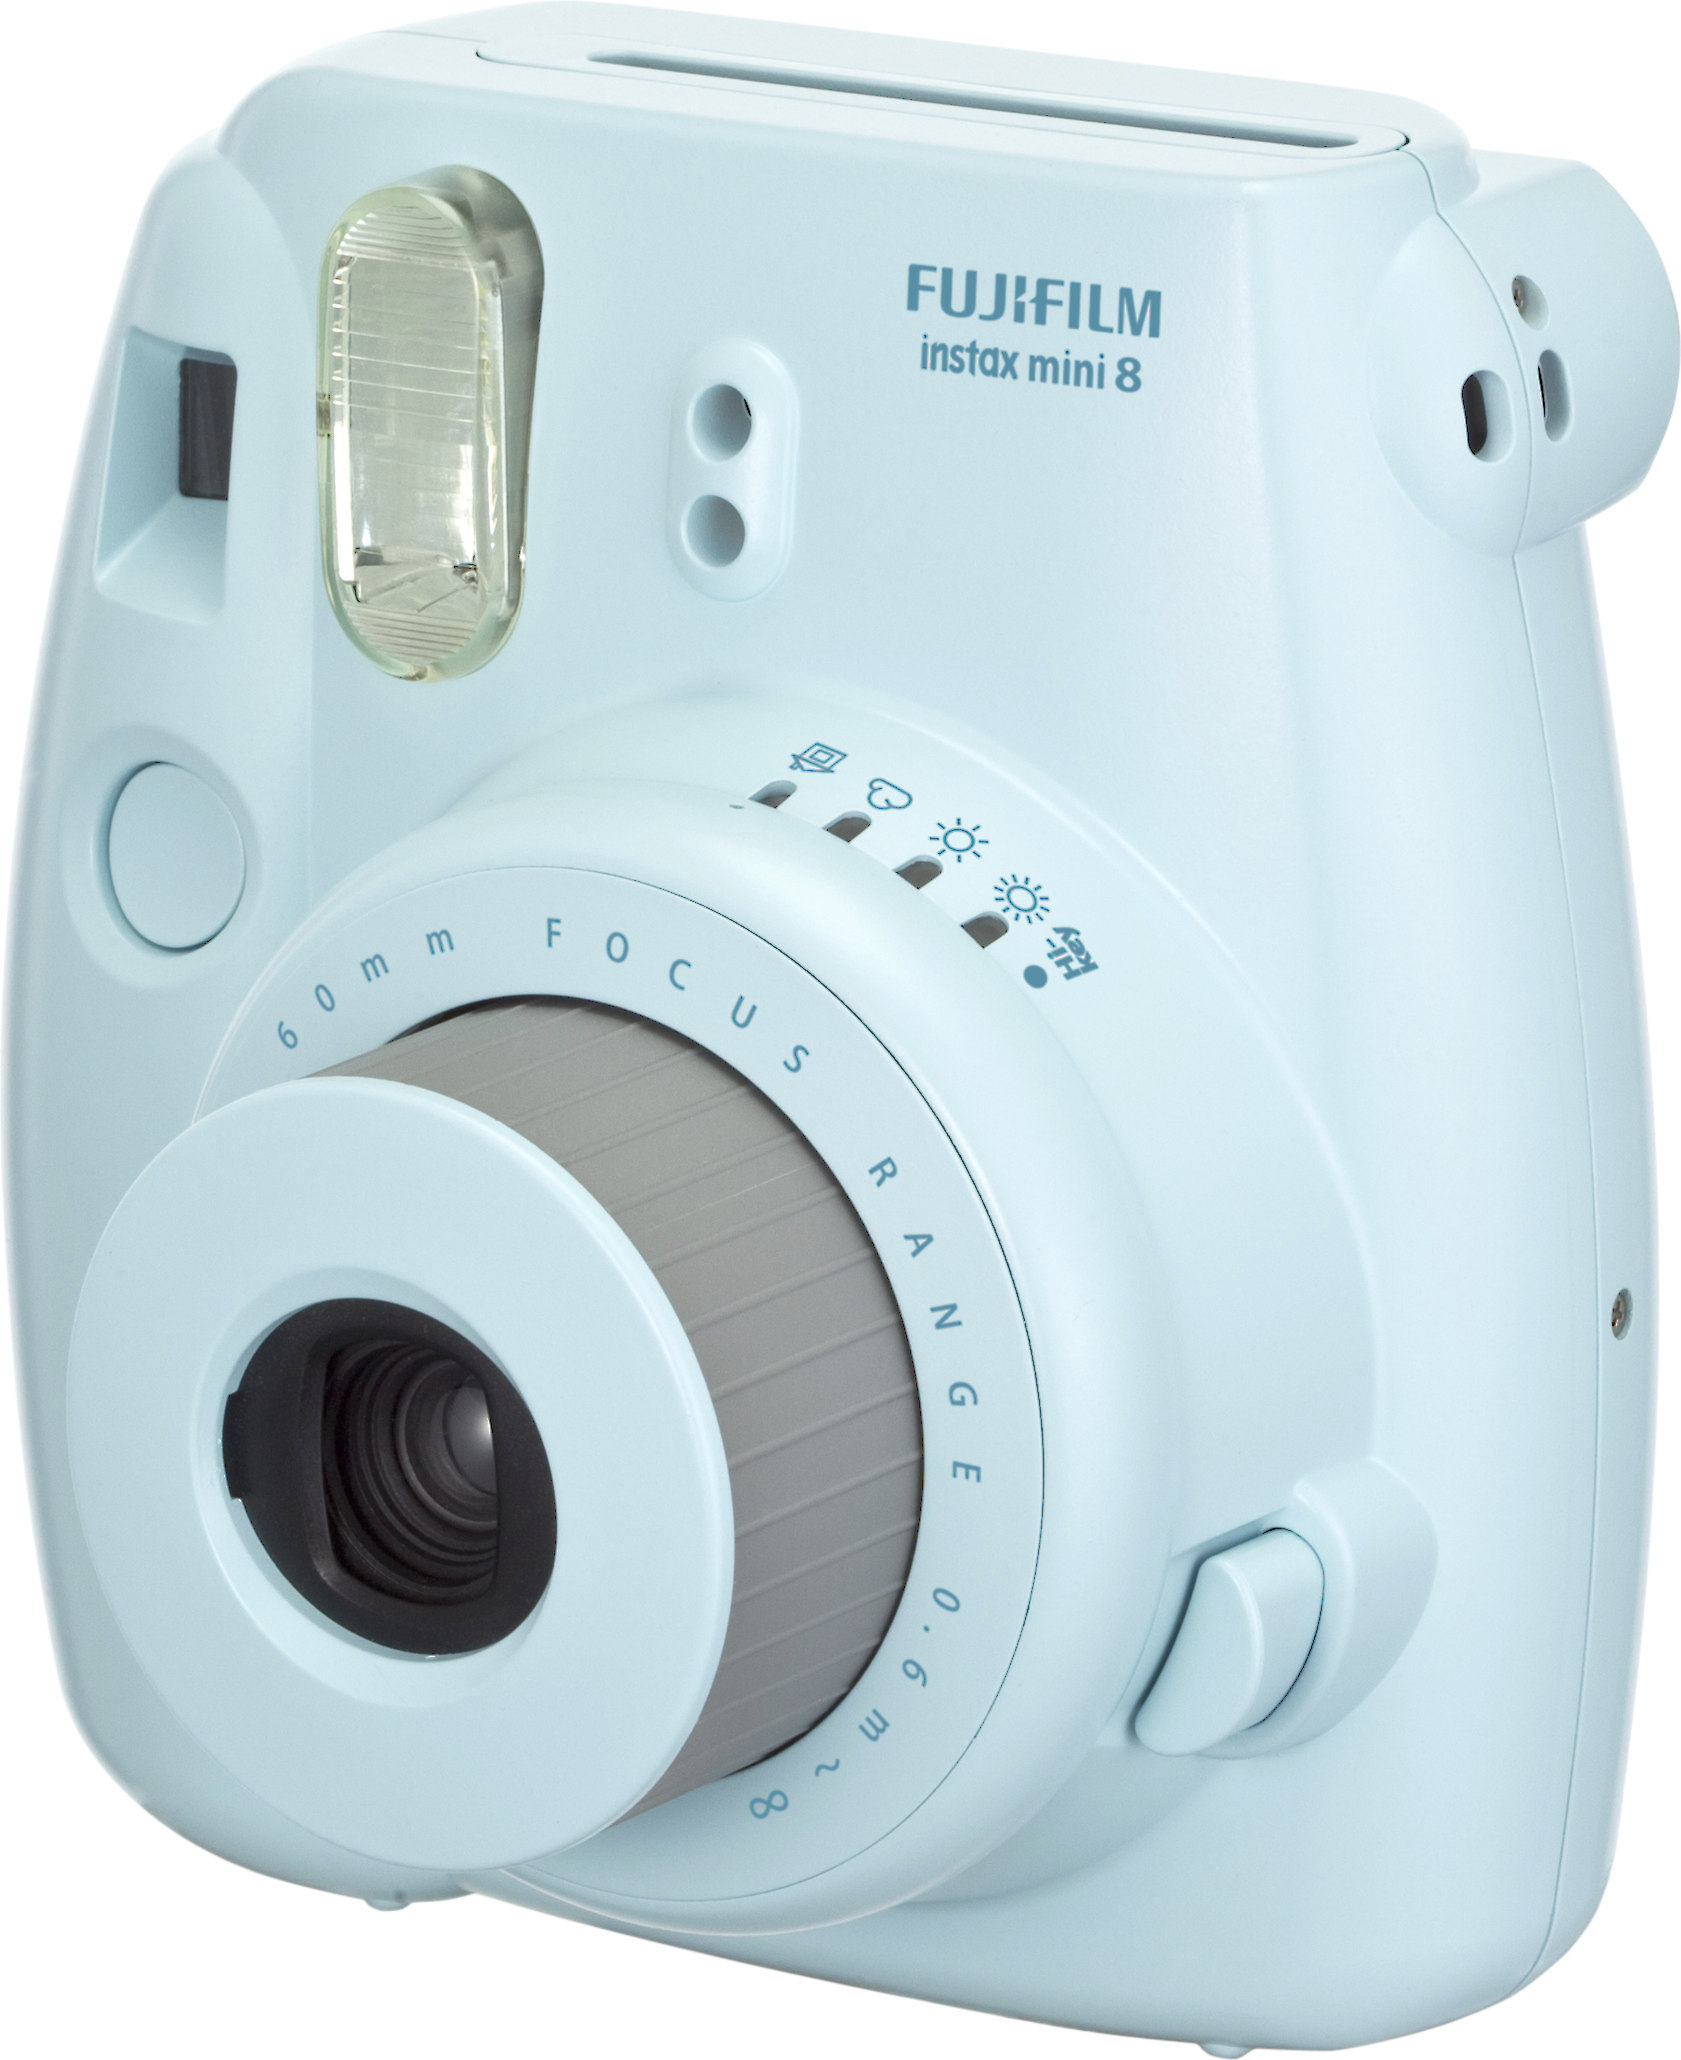 Fujifilm Instax Mini 8  Blue  Compact Instant Camera At Fujifilm Instax Mini 8 Manual Espa U00c3 U00b1ol